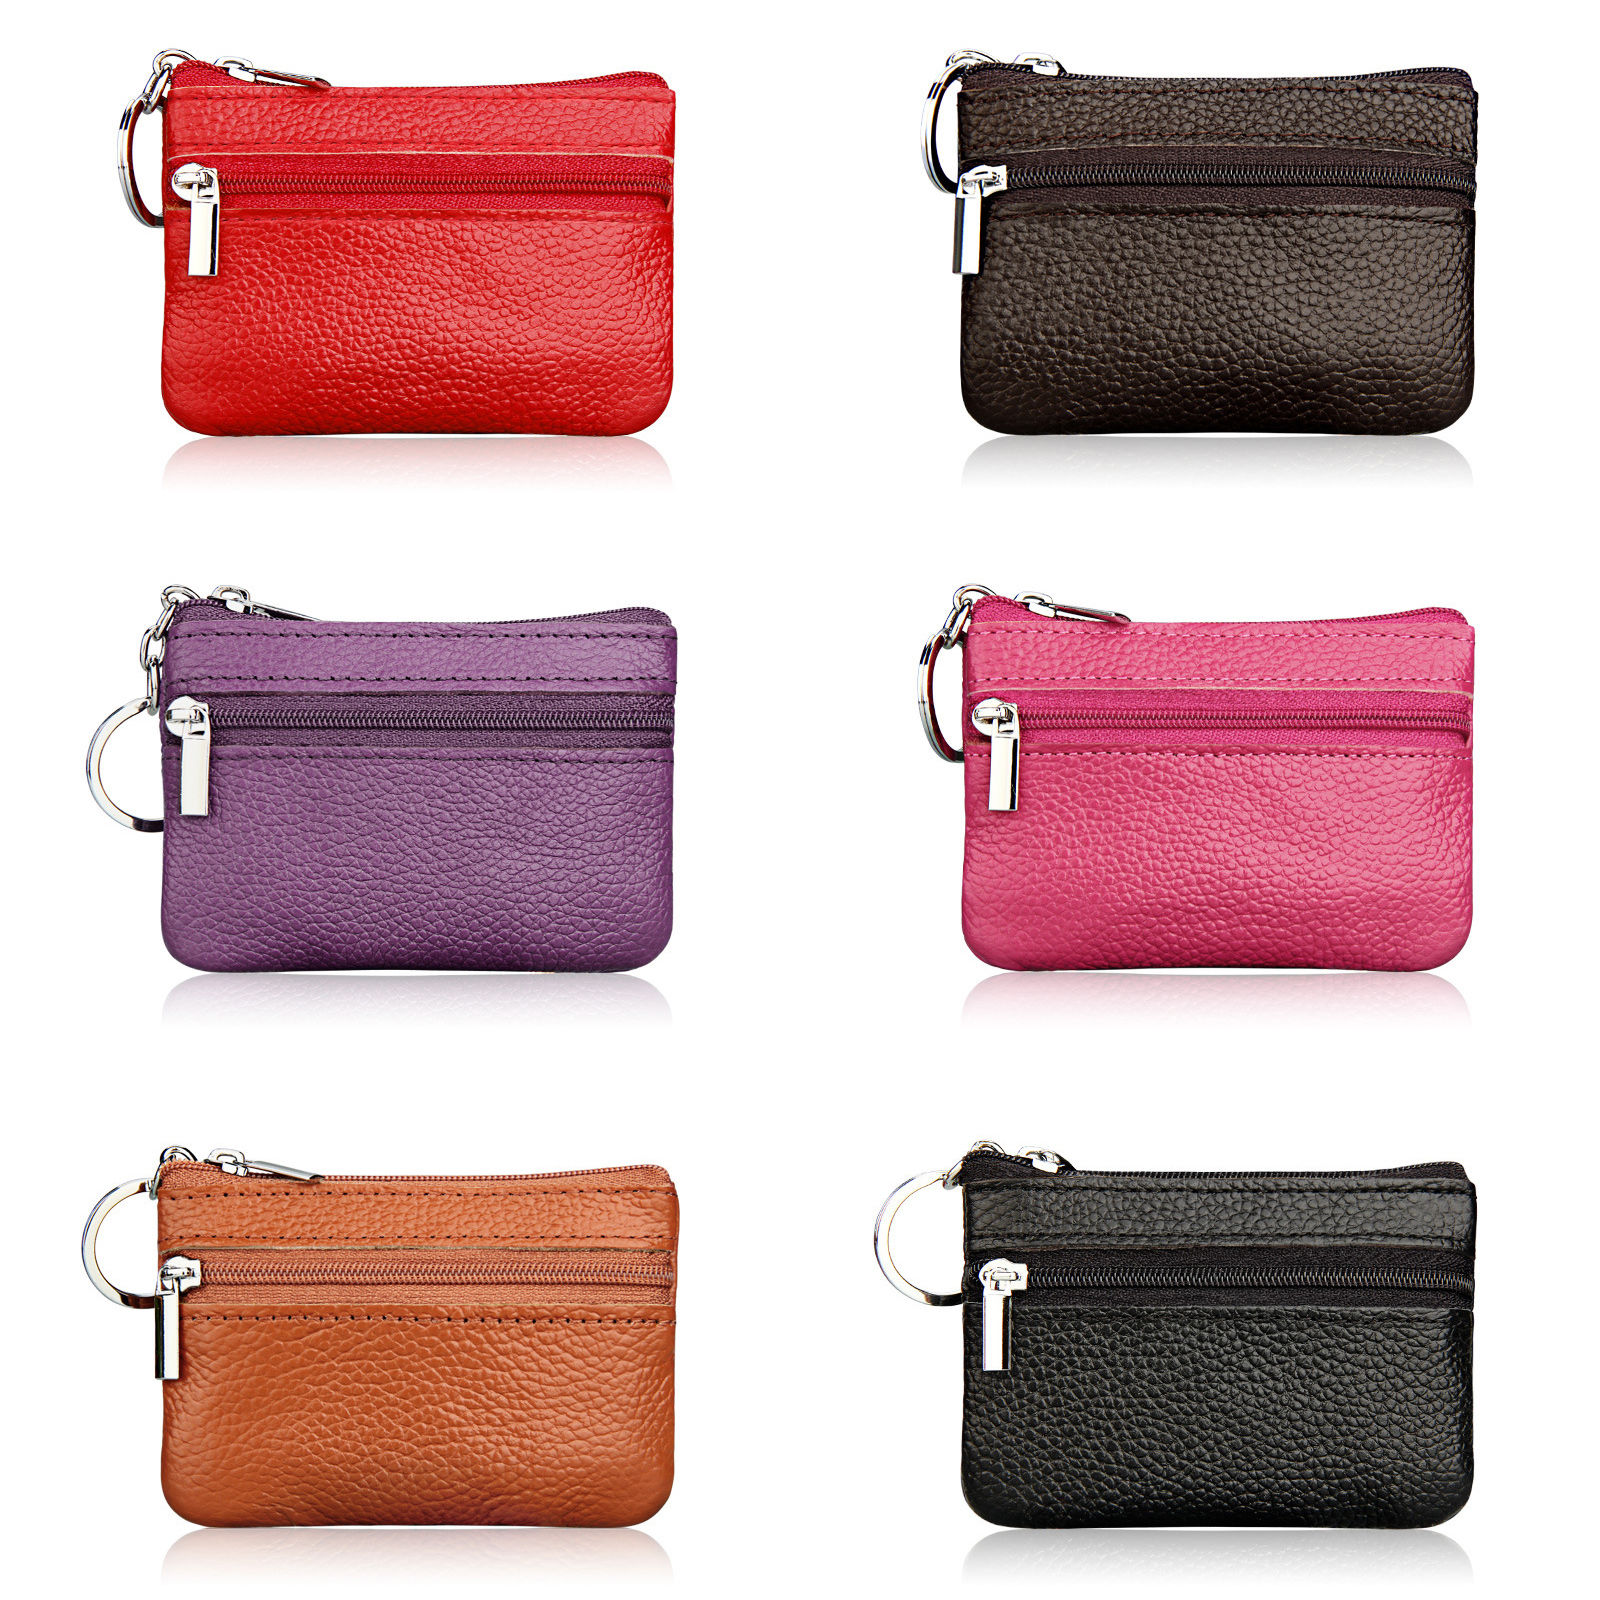 78e0572c7bb0c Details about Women Leather Coin Card Key Ring Wallet Pouch Mini Purse  Zipper Small Change Bag